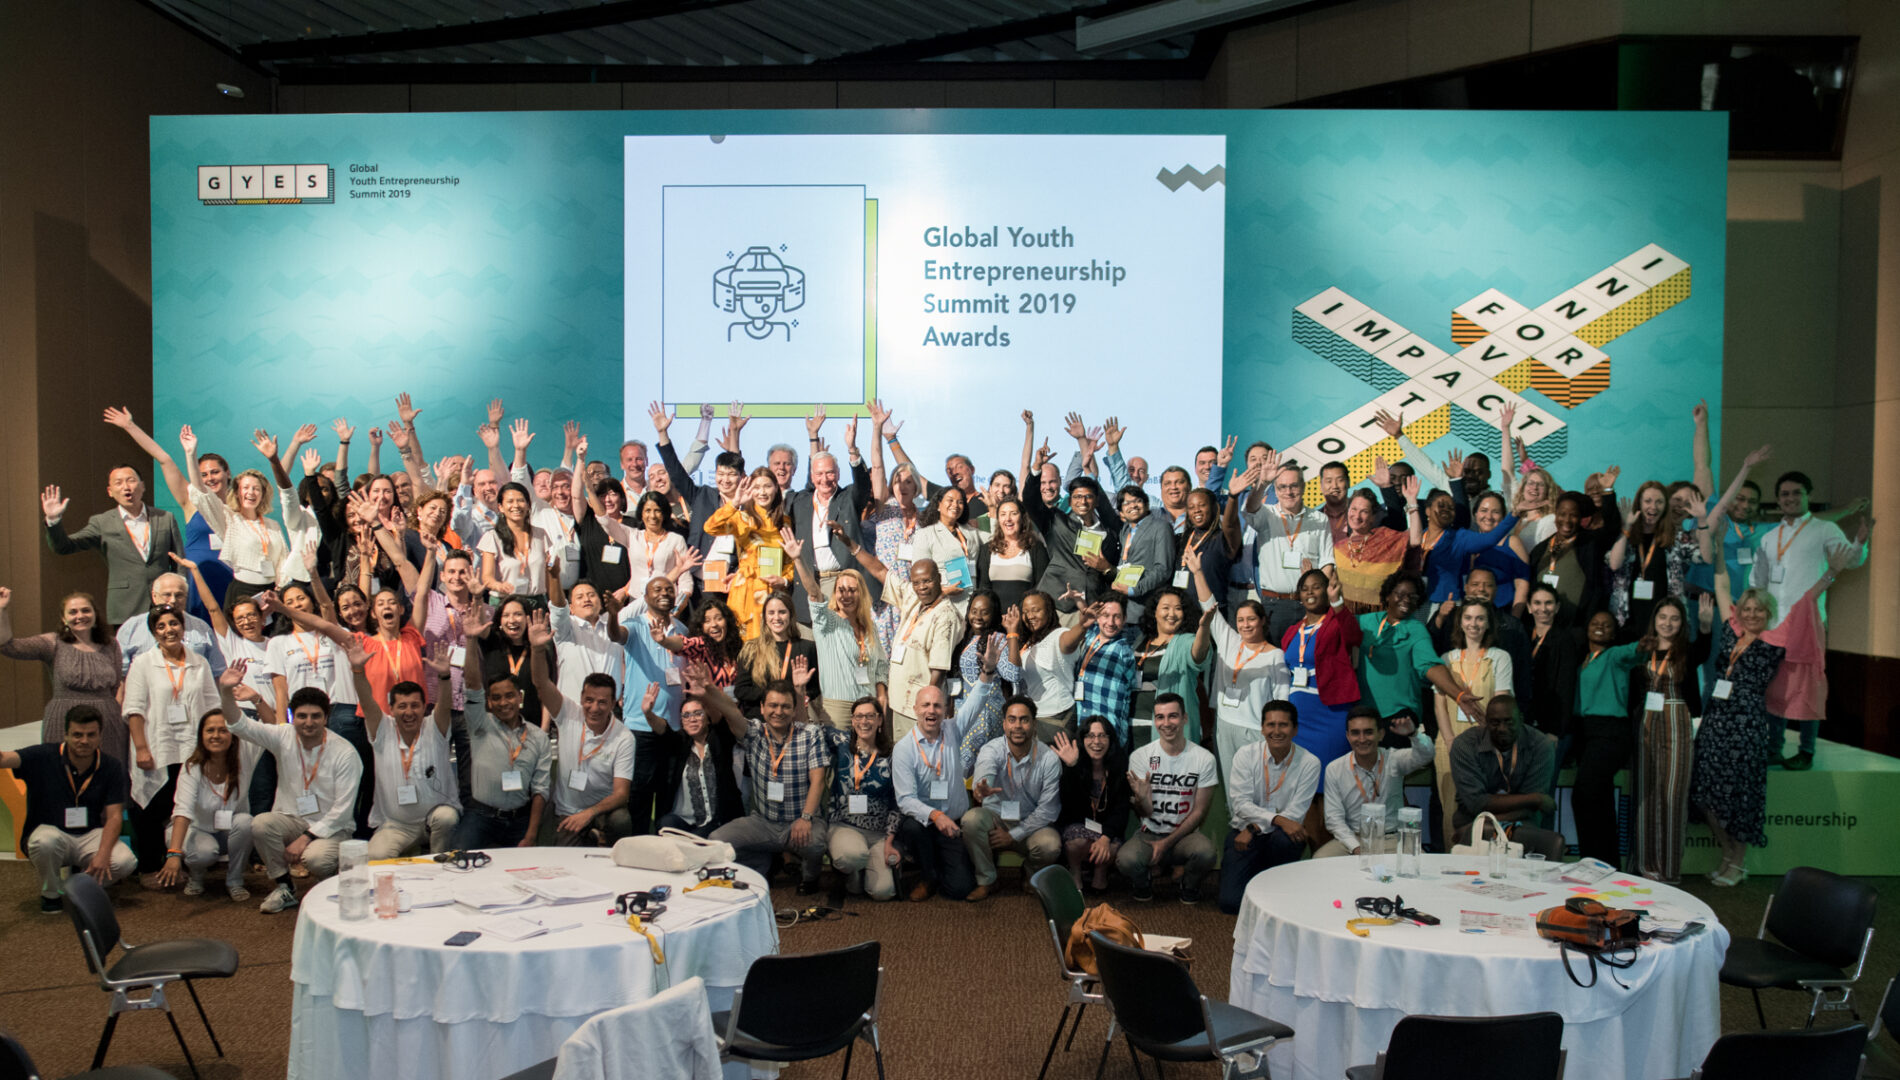 Global Youth Entrepreneurship Summit 2019